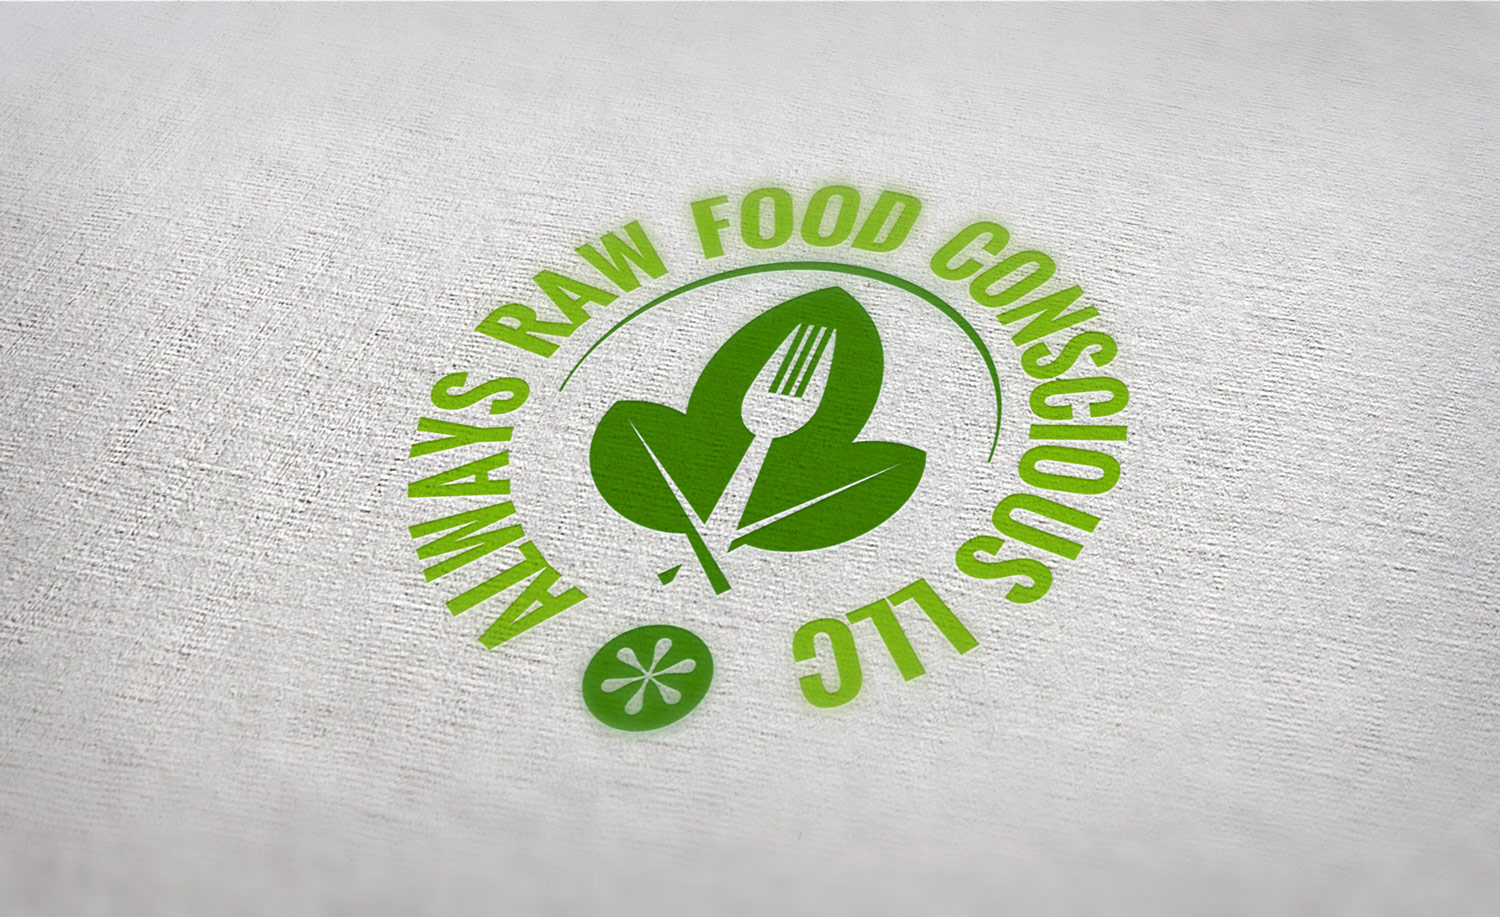 Raw Food Conscious logo – P.R. Incorporated